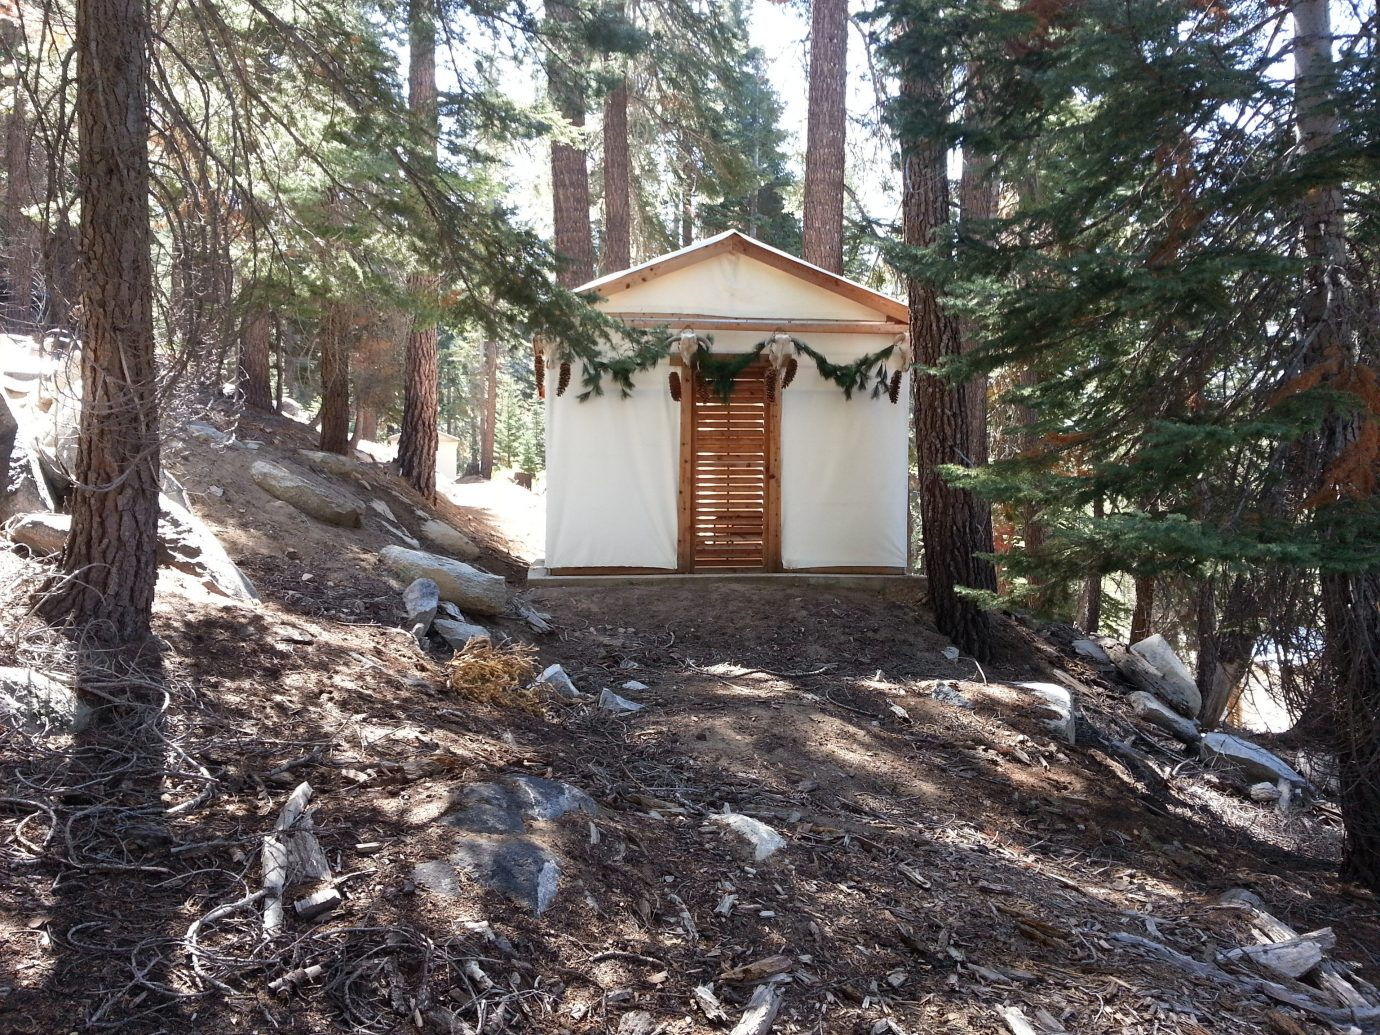 Glamping Outdoors + Adventure Trip Ideas tree outdoor ground house home building cottage shack estate log cabin wood yard backyard hut Forest trail wooded area plant surrounded